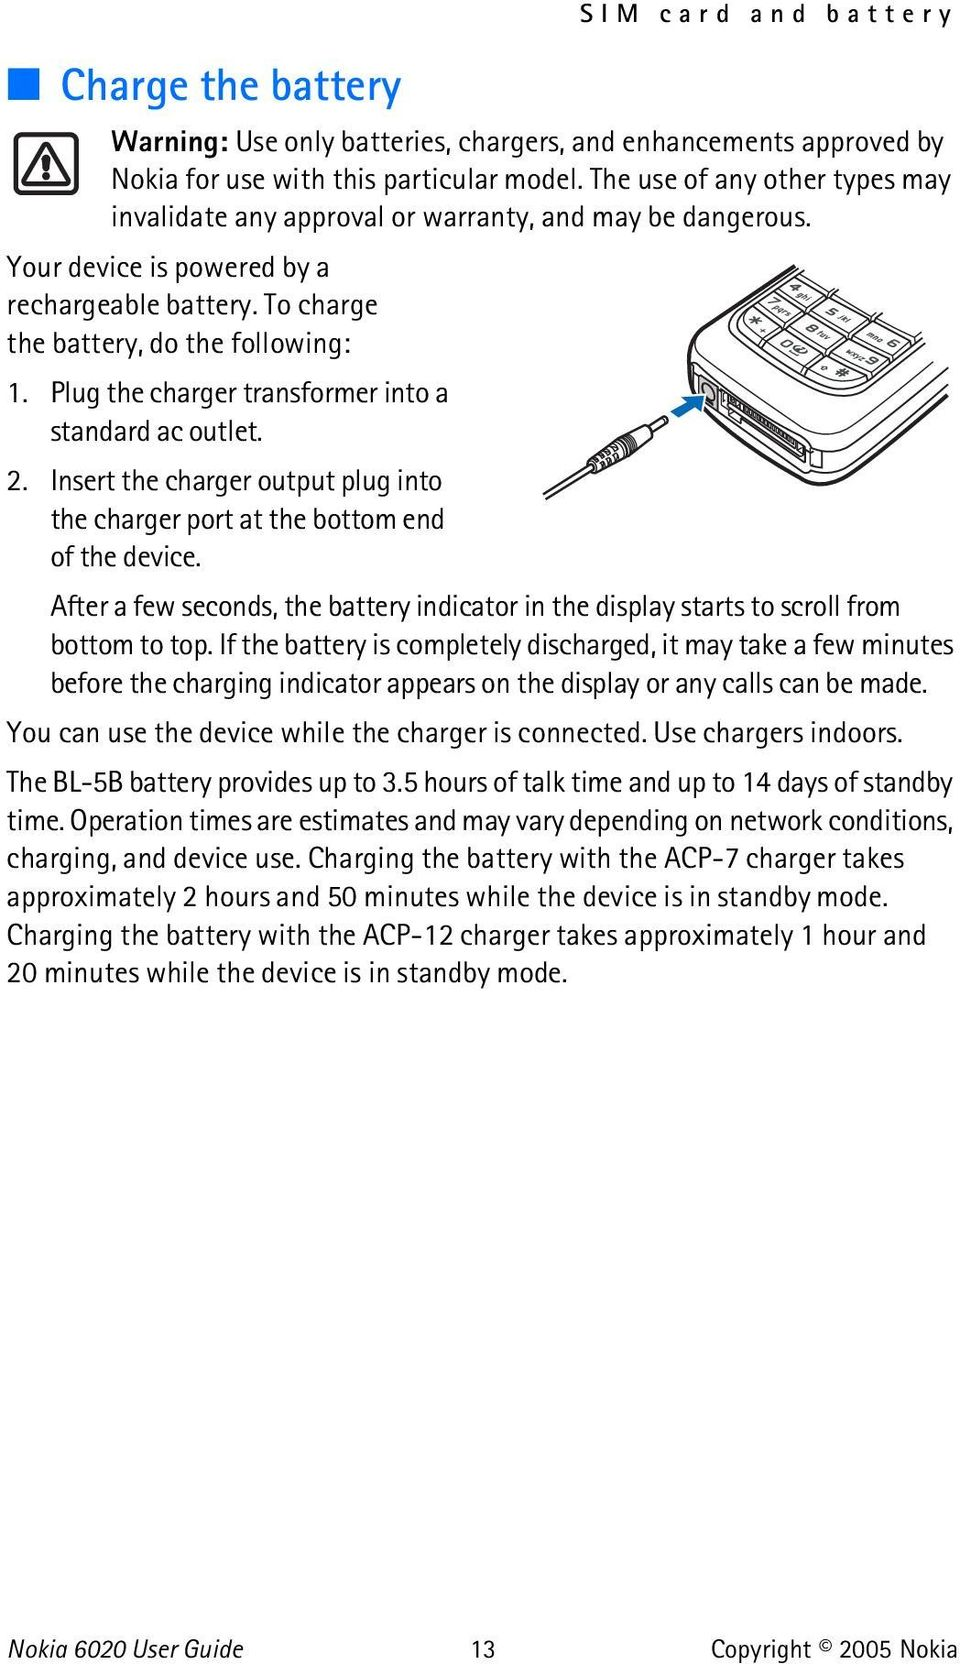 Plug the charger transformer into a standard ac outlet. 2. Insert the charger output plug into the charger port at the bottom end of the device.